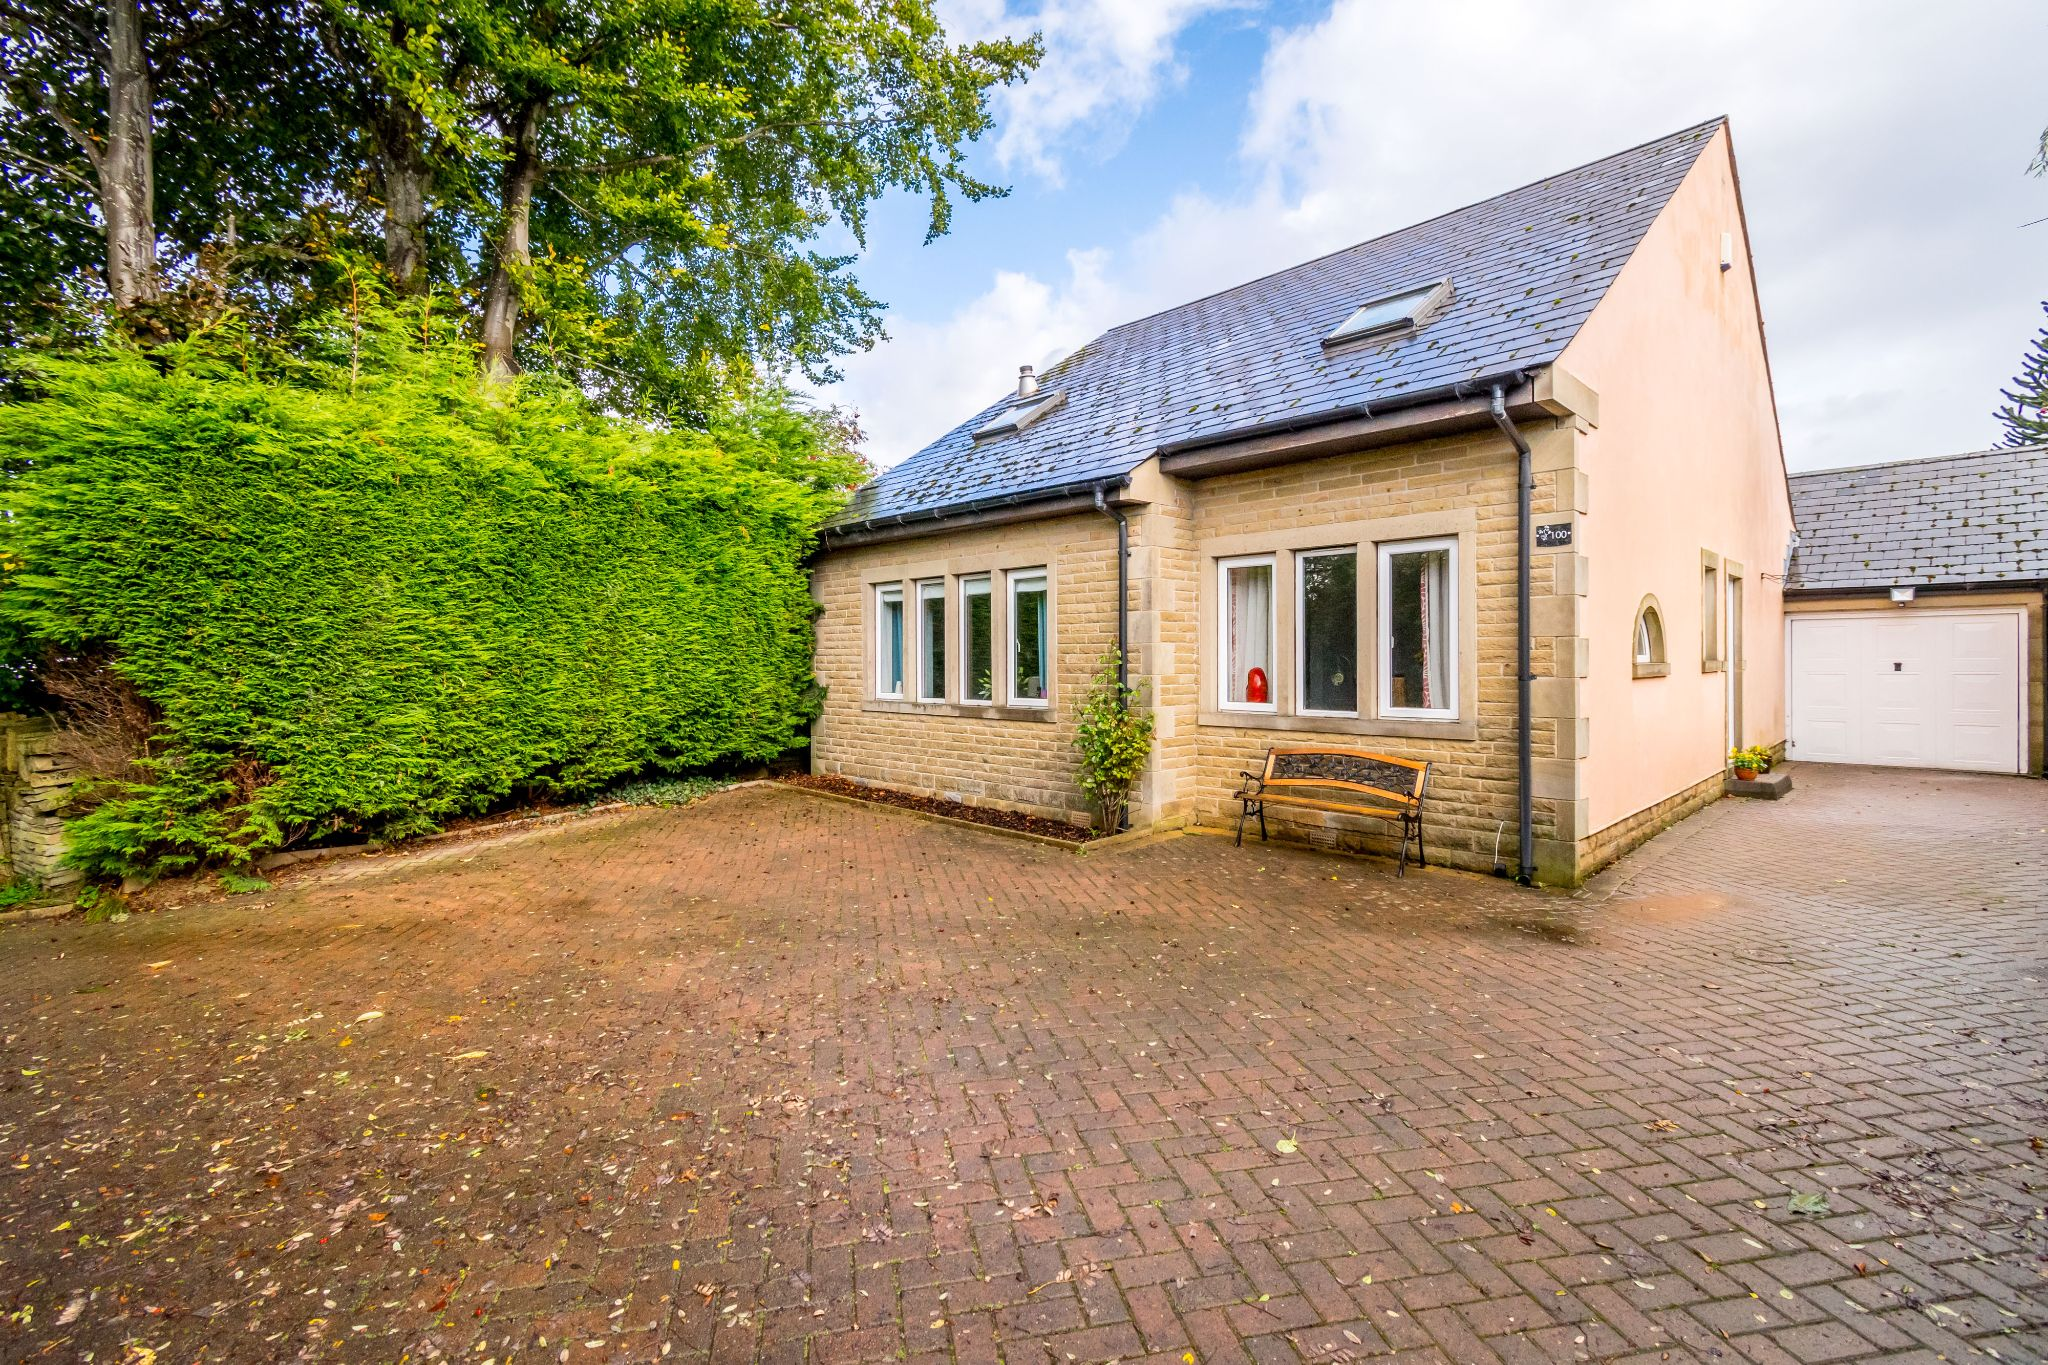 5 bedroom detached house SSTC in Brighouse - Front aspect